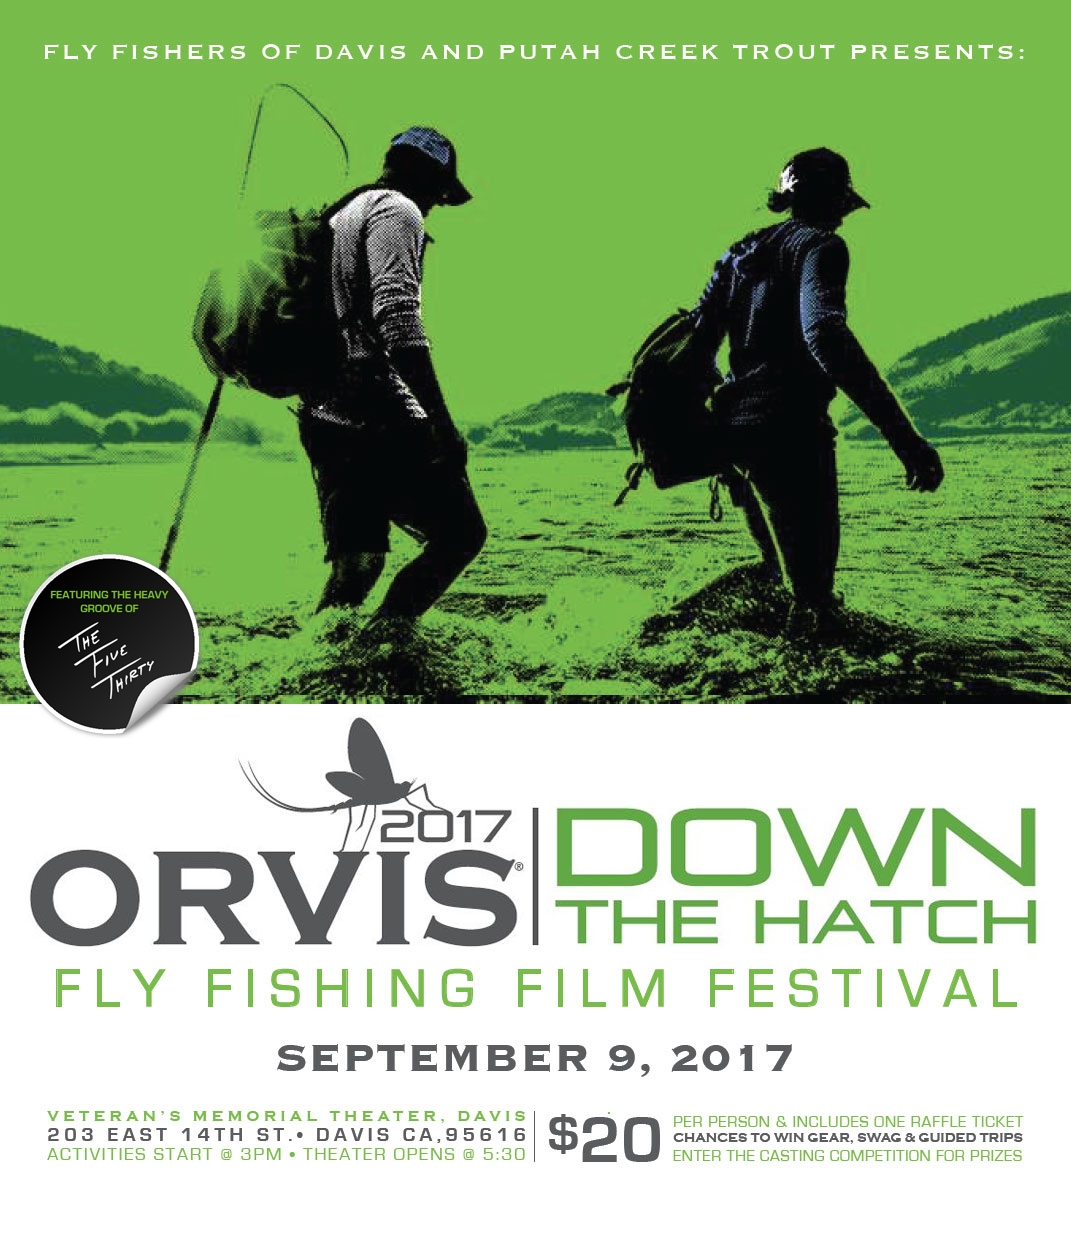 2017 Orvis Down The Hatch Film Festival In Davis